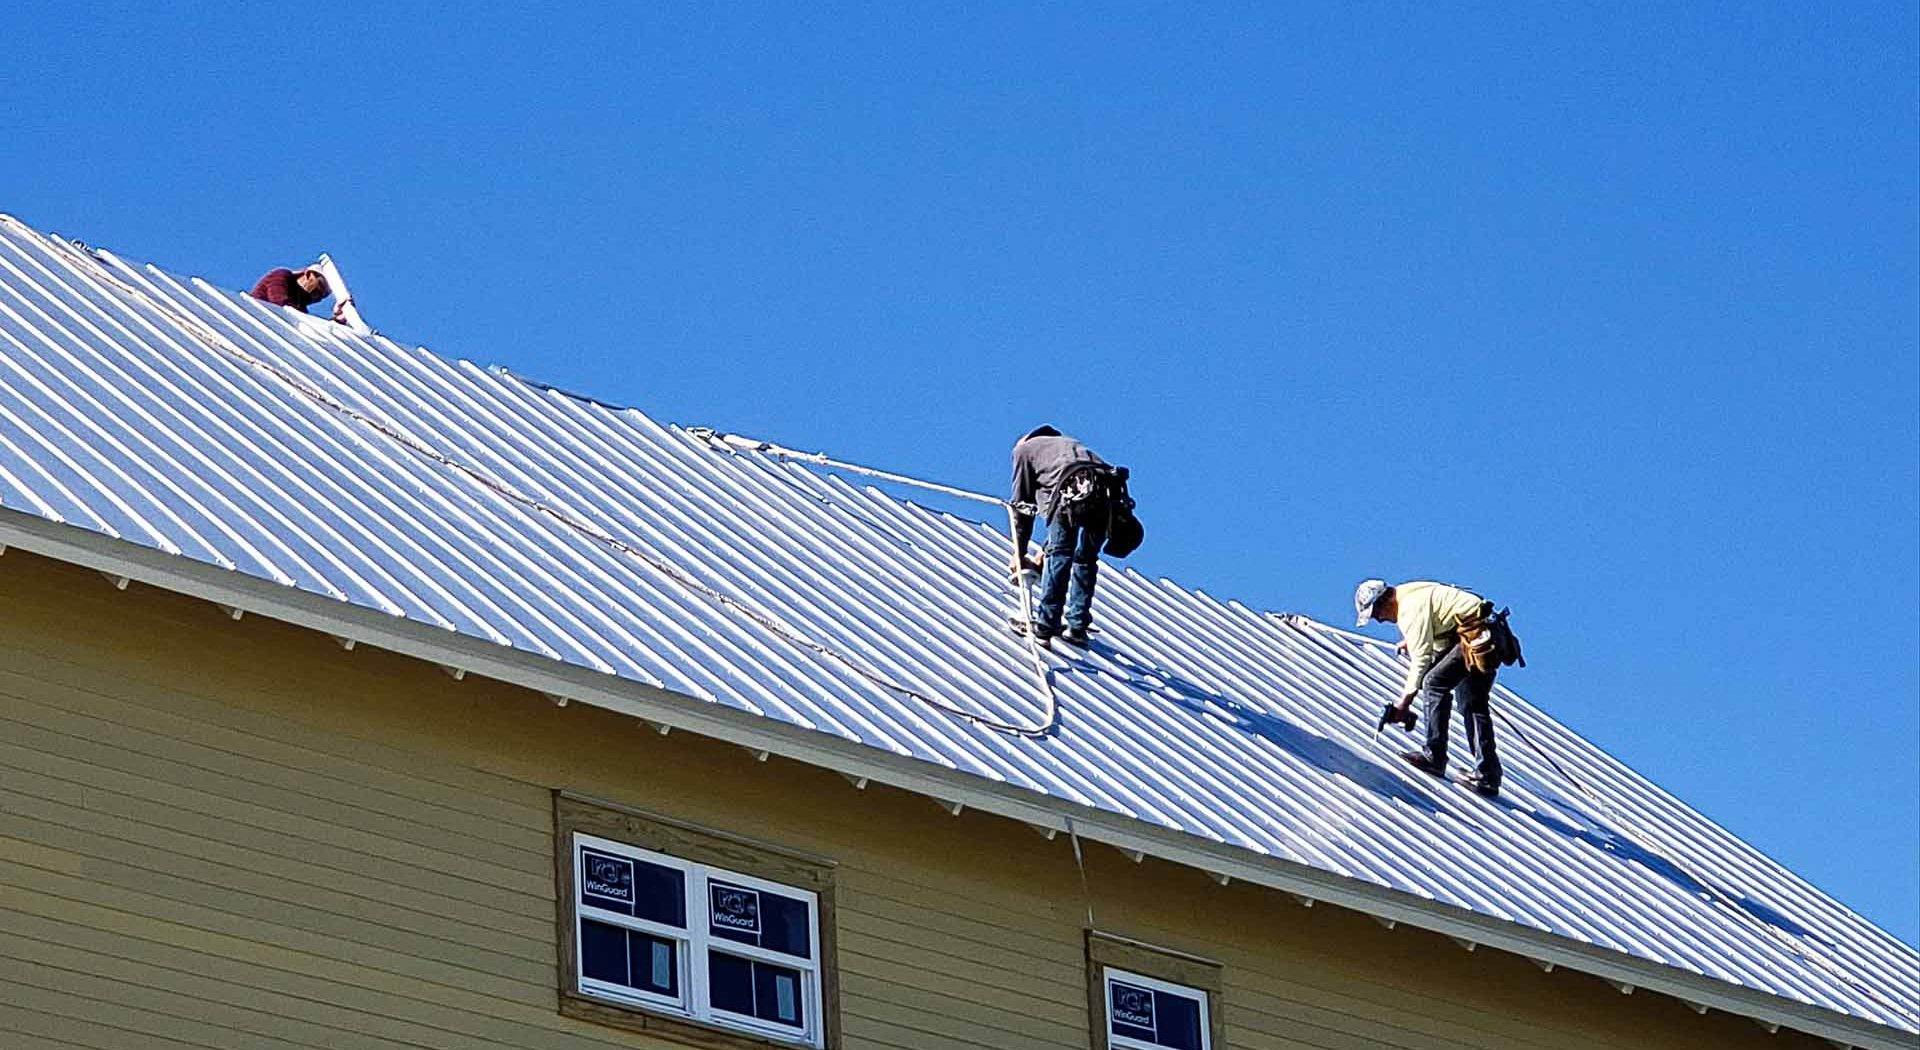 How Do I Find A Reliable Roofer In My Area?